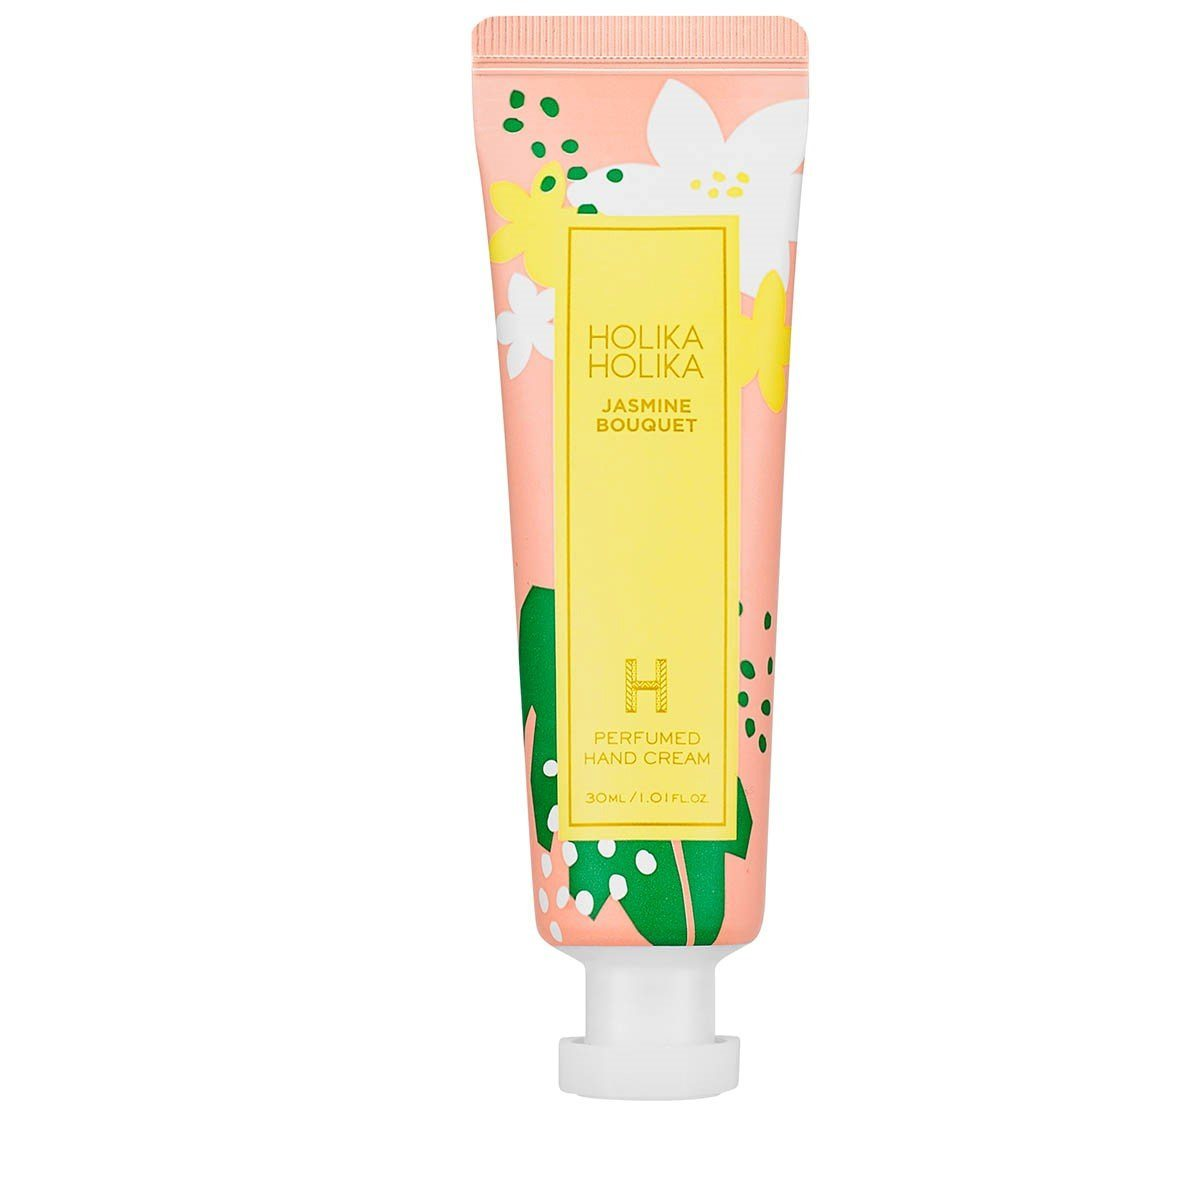 Health & Beauty > Personal Care > Cosmetics > Skin Care > Lotion & Moisturizer - Jasmine Bouquet Perfumed Hand Cream Krem Do Rąk 30 Ml